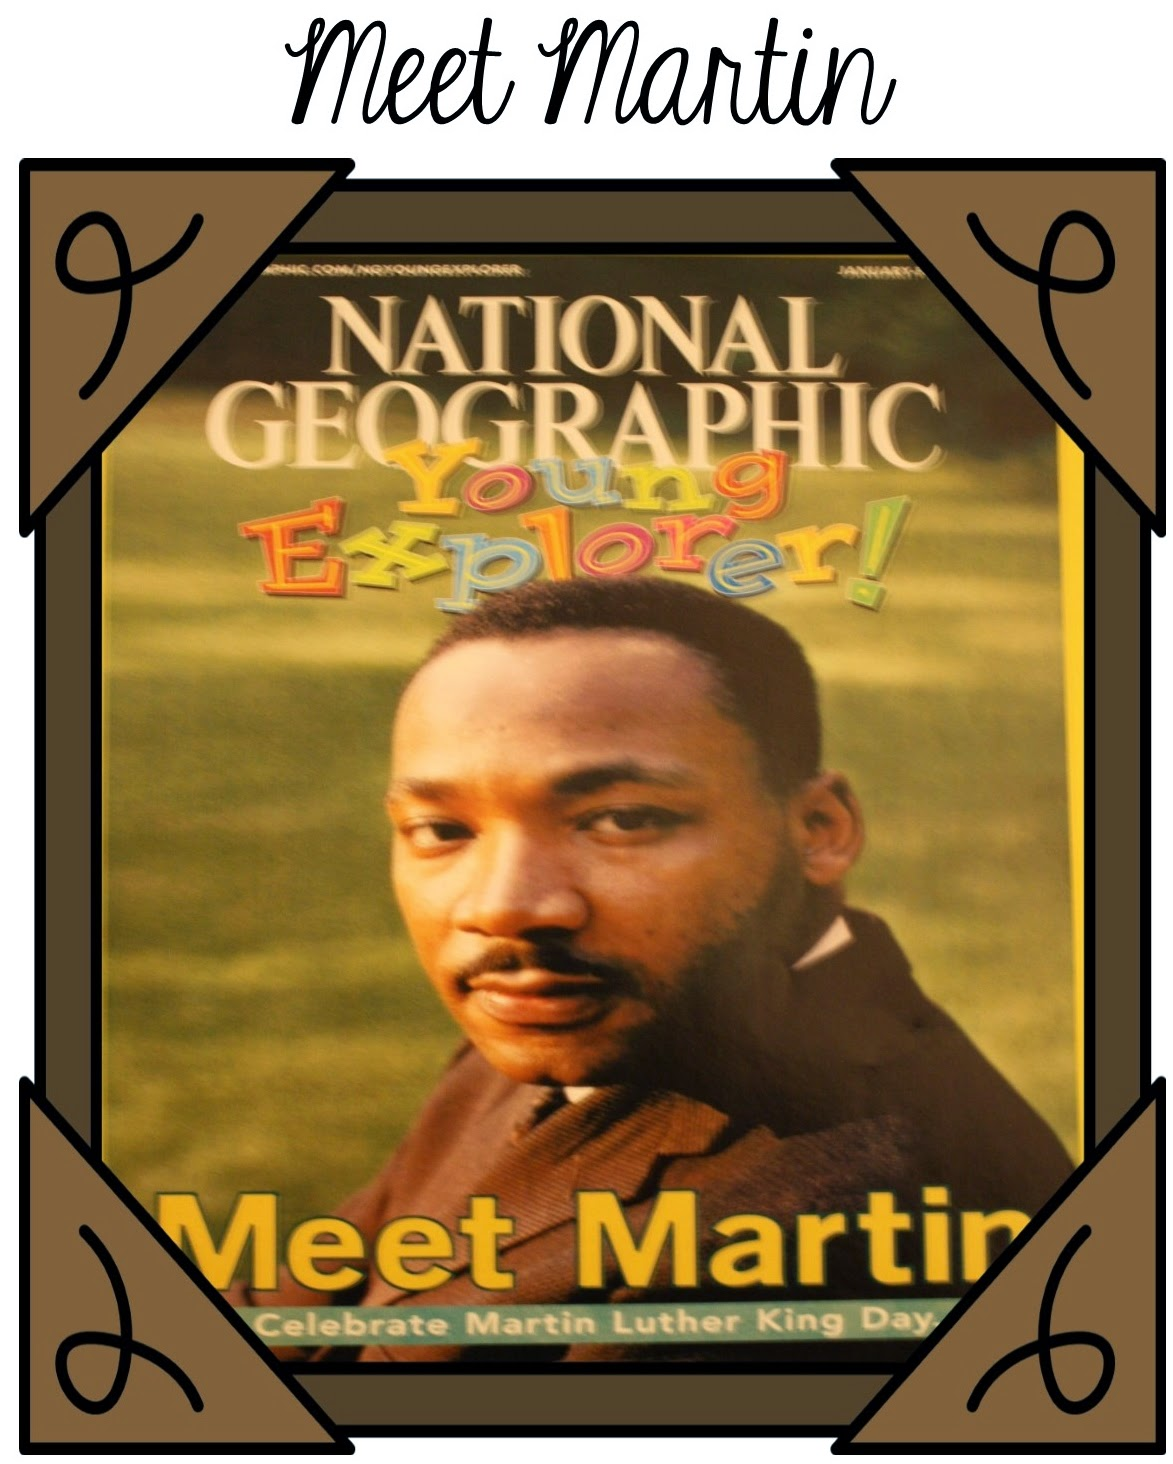 Uncategorized Brainpop Mlk january 2015 recipe for teaching websites about mlk brainpop has a free video to use with your students national geographic kids some great information and